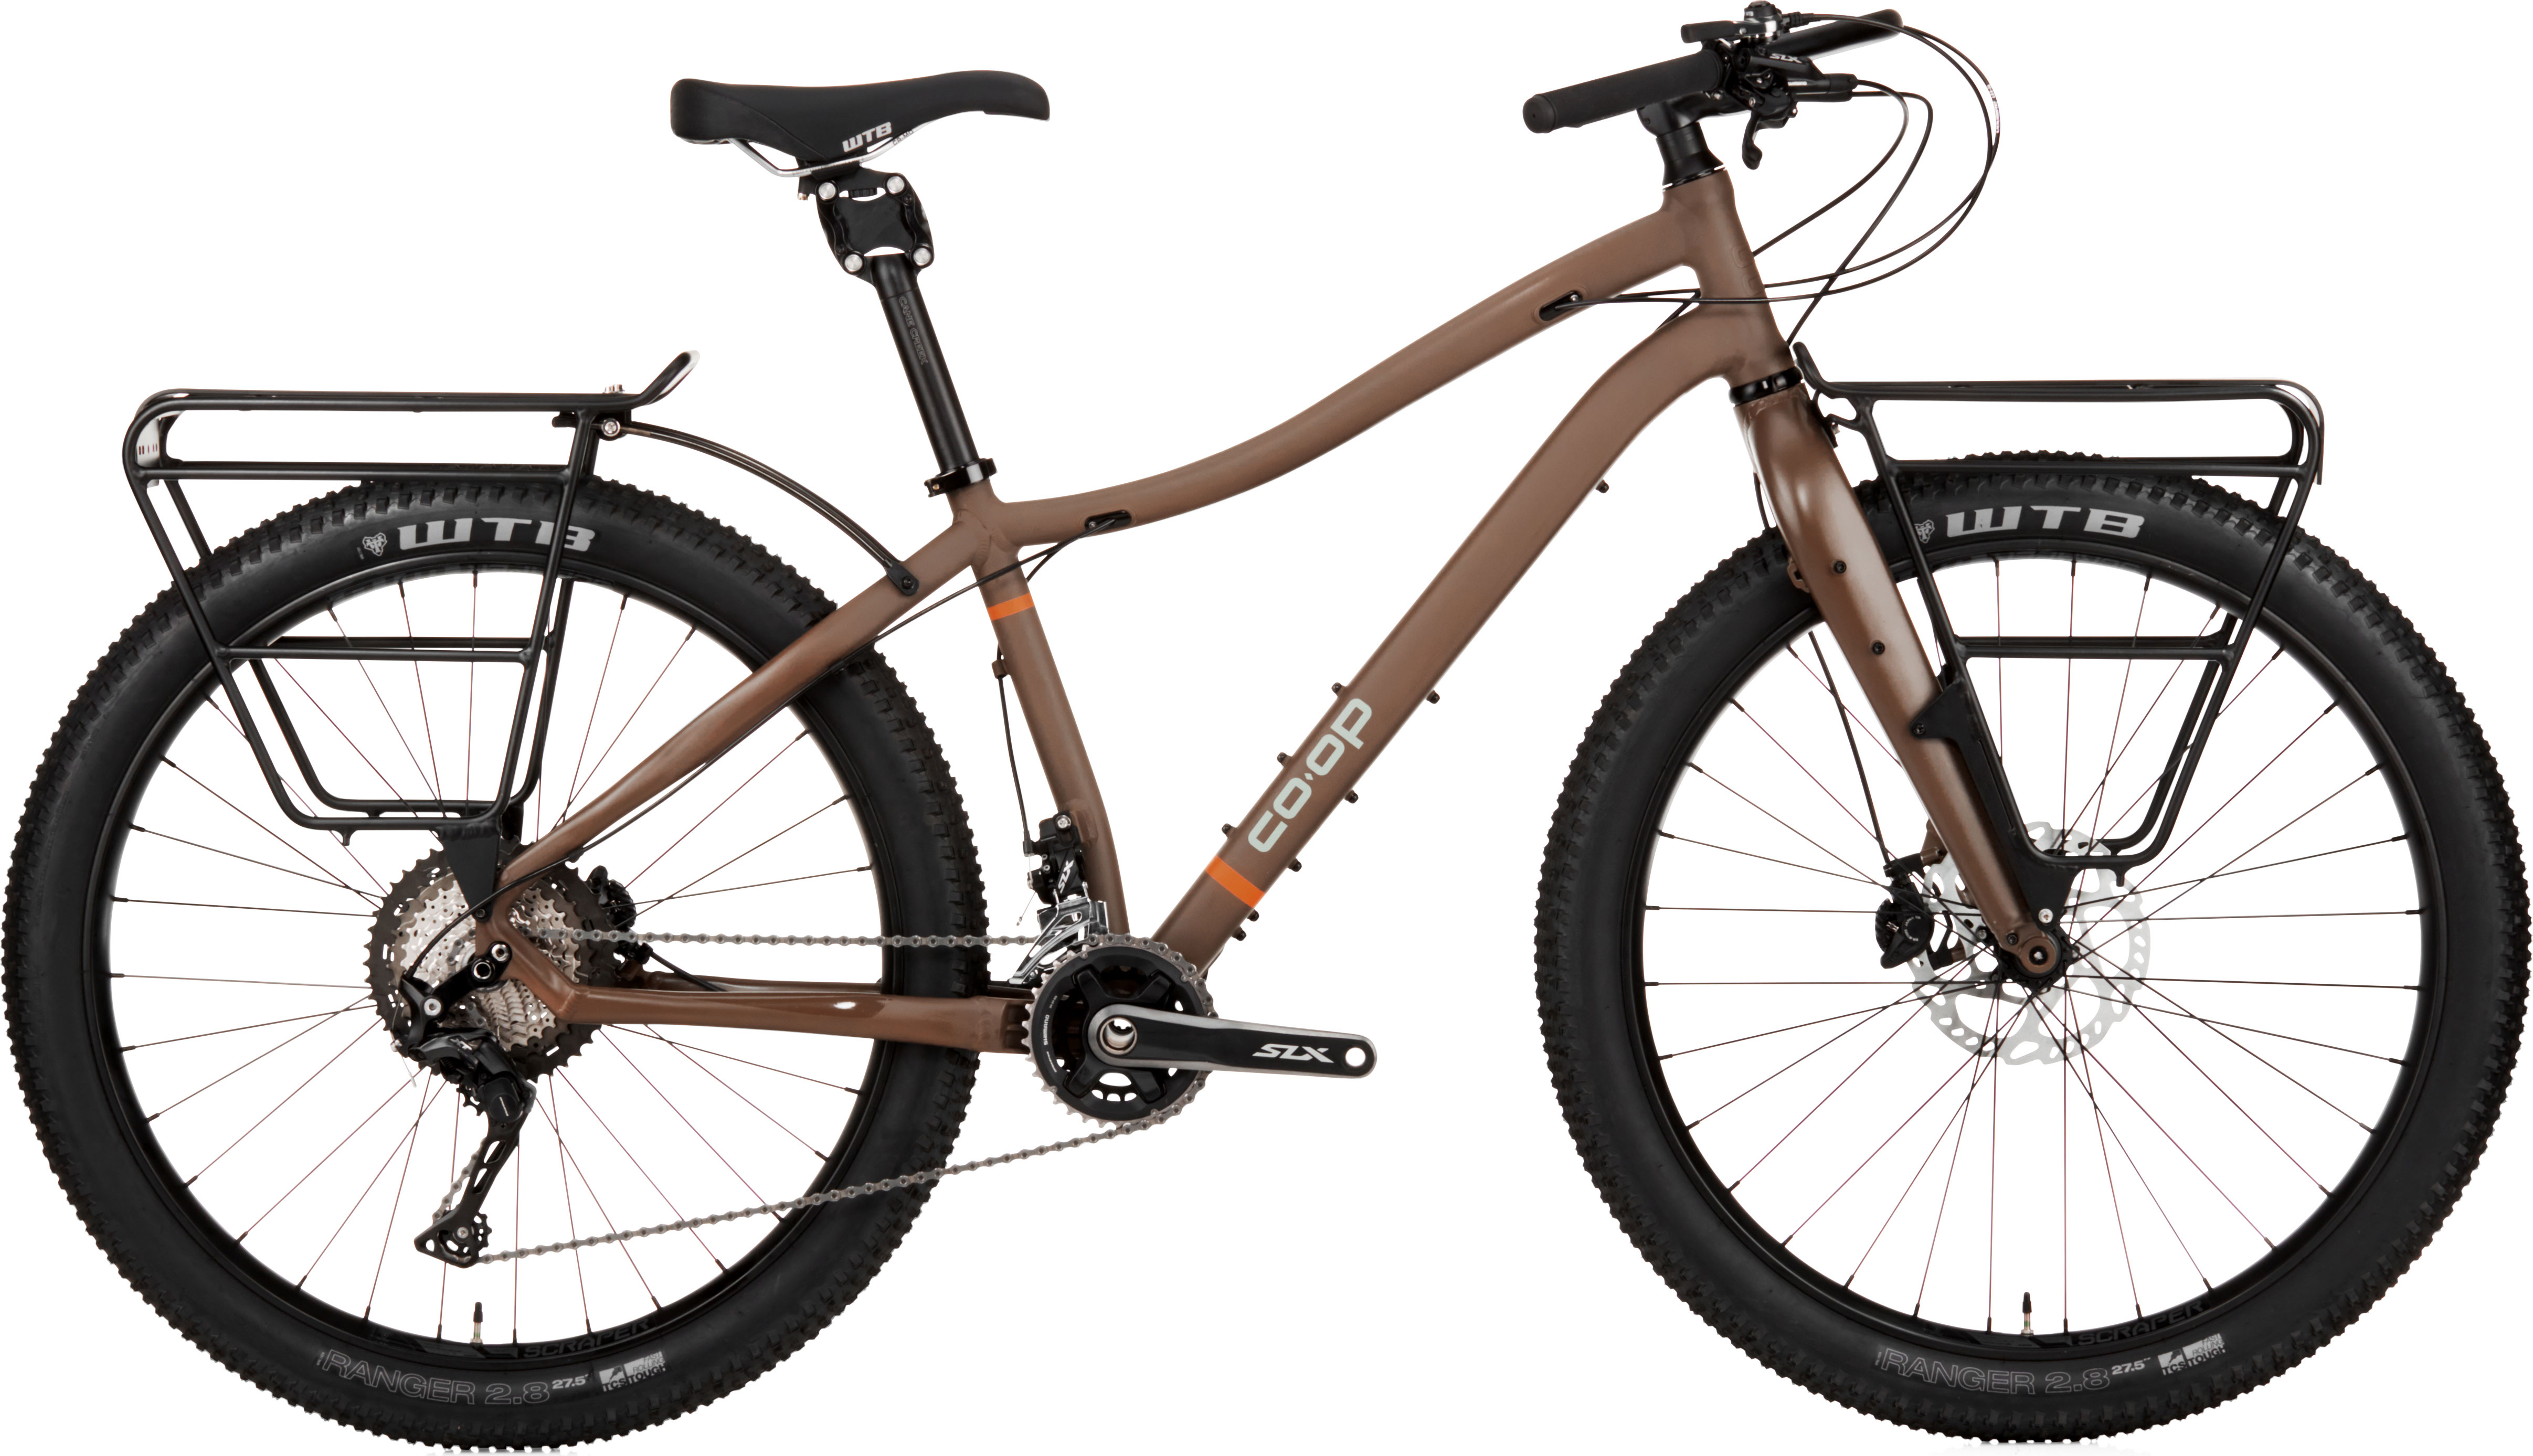 3a04fb608d2 REI Beefs Up Co-op Cycles with Plus-Size Touring Bike   GearJunkie